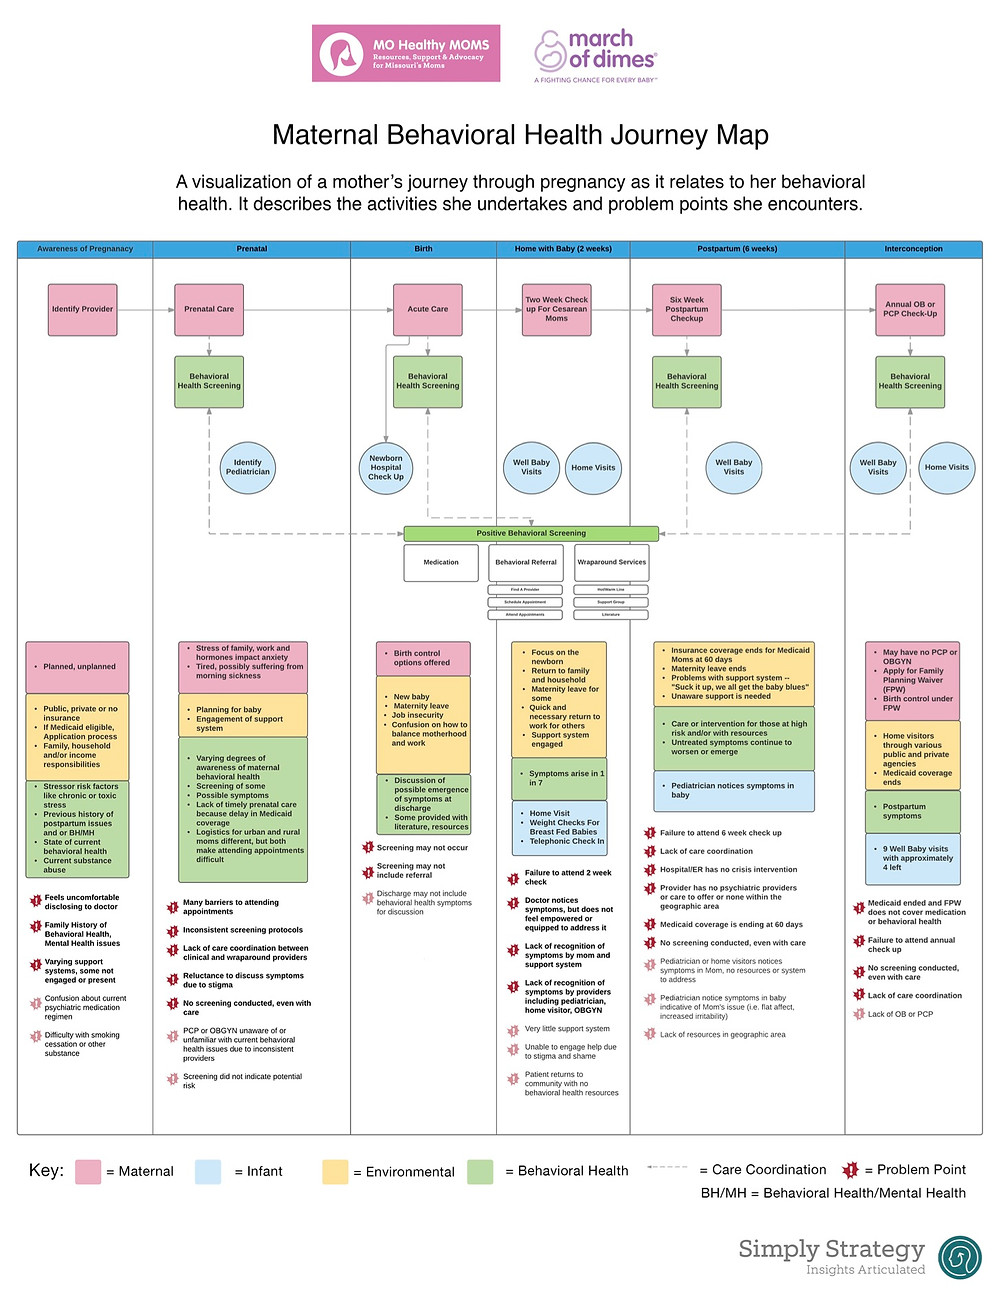 A journey map, visualizing a mother's journey through pregnancy as it relates to her behavioral health.